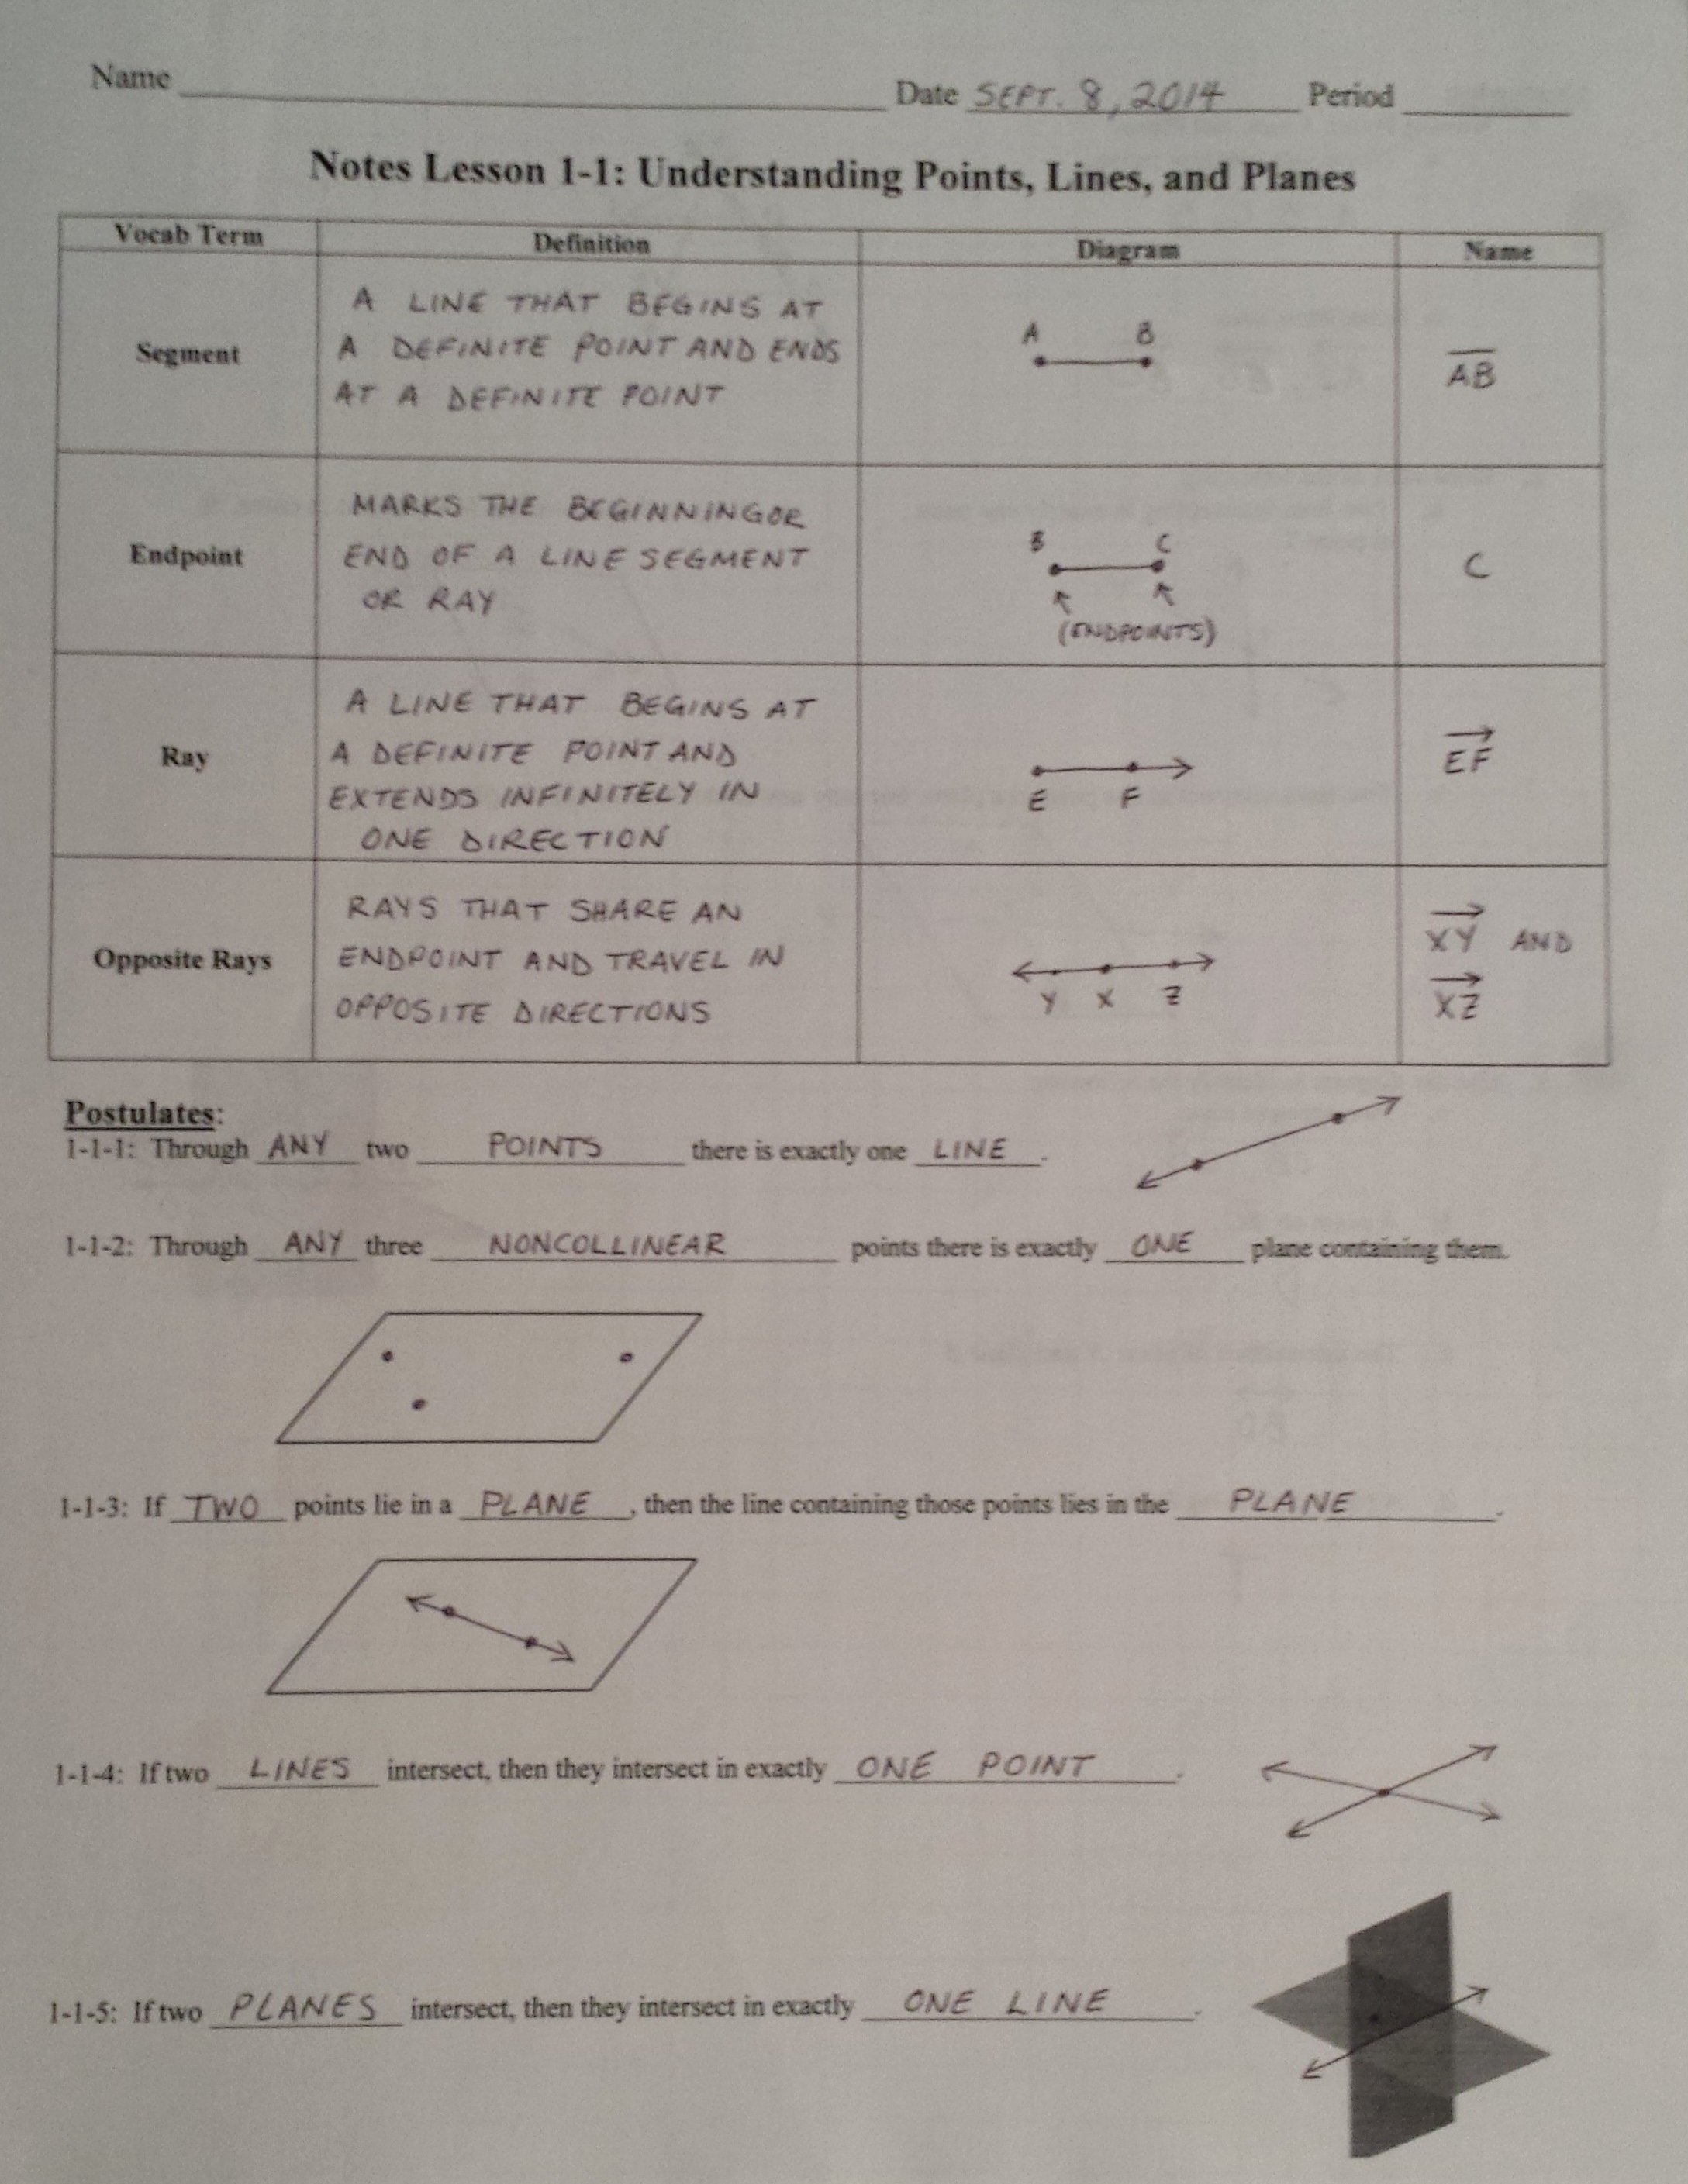 Points Lines and Planes Worksheet Inspirational Points Lines and Planes Worksheets Pdf the Best Worksheets